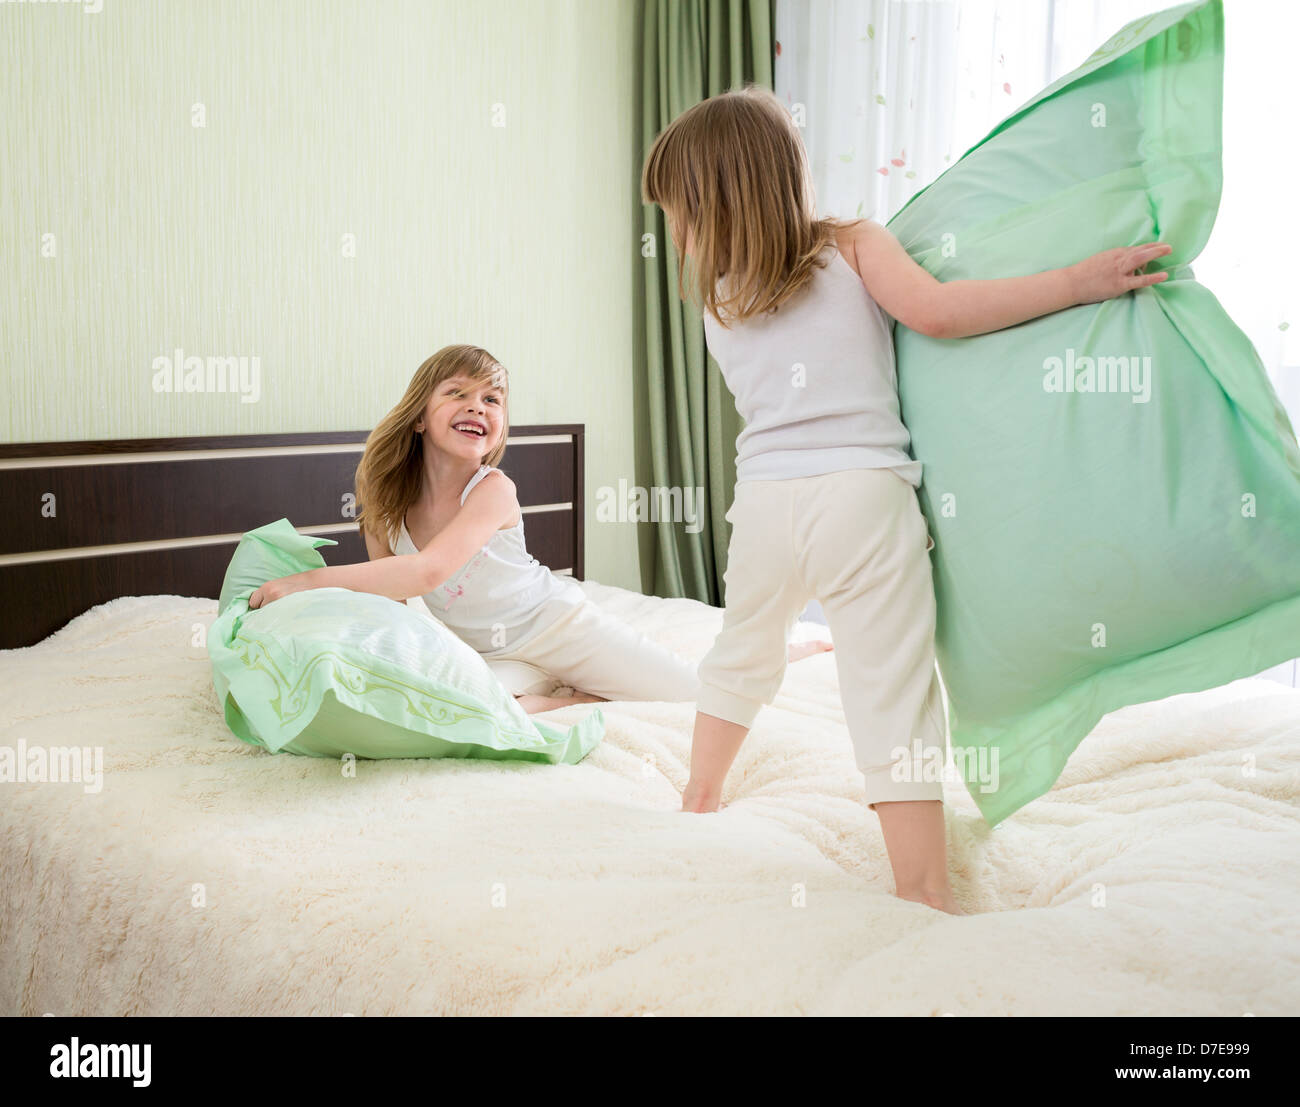 two girls playing with pillows in bedroom - Stock Image